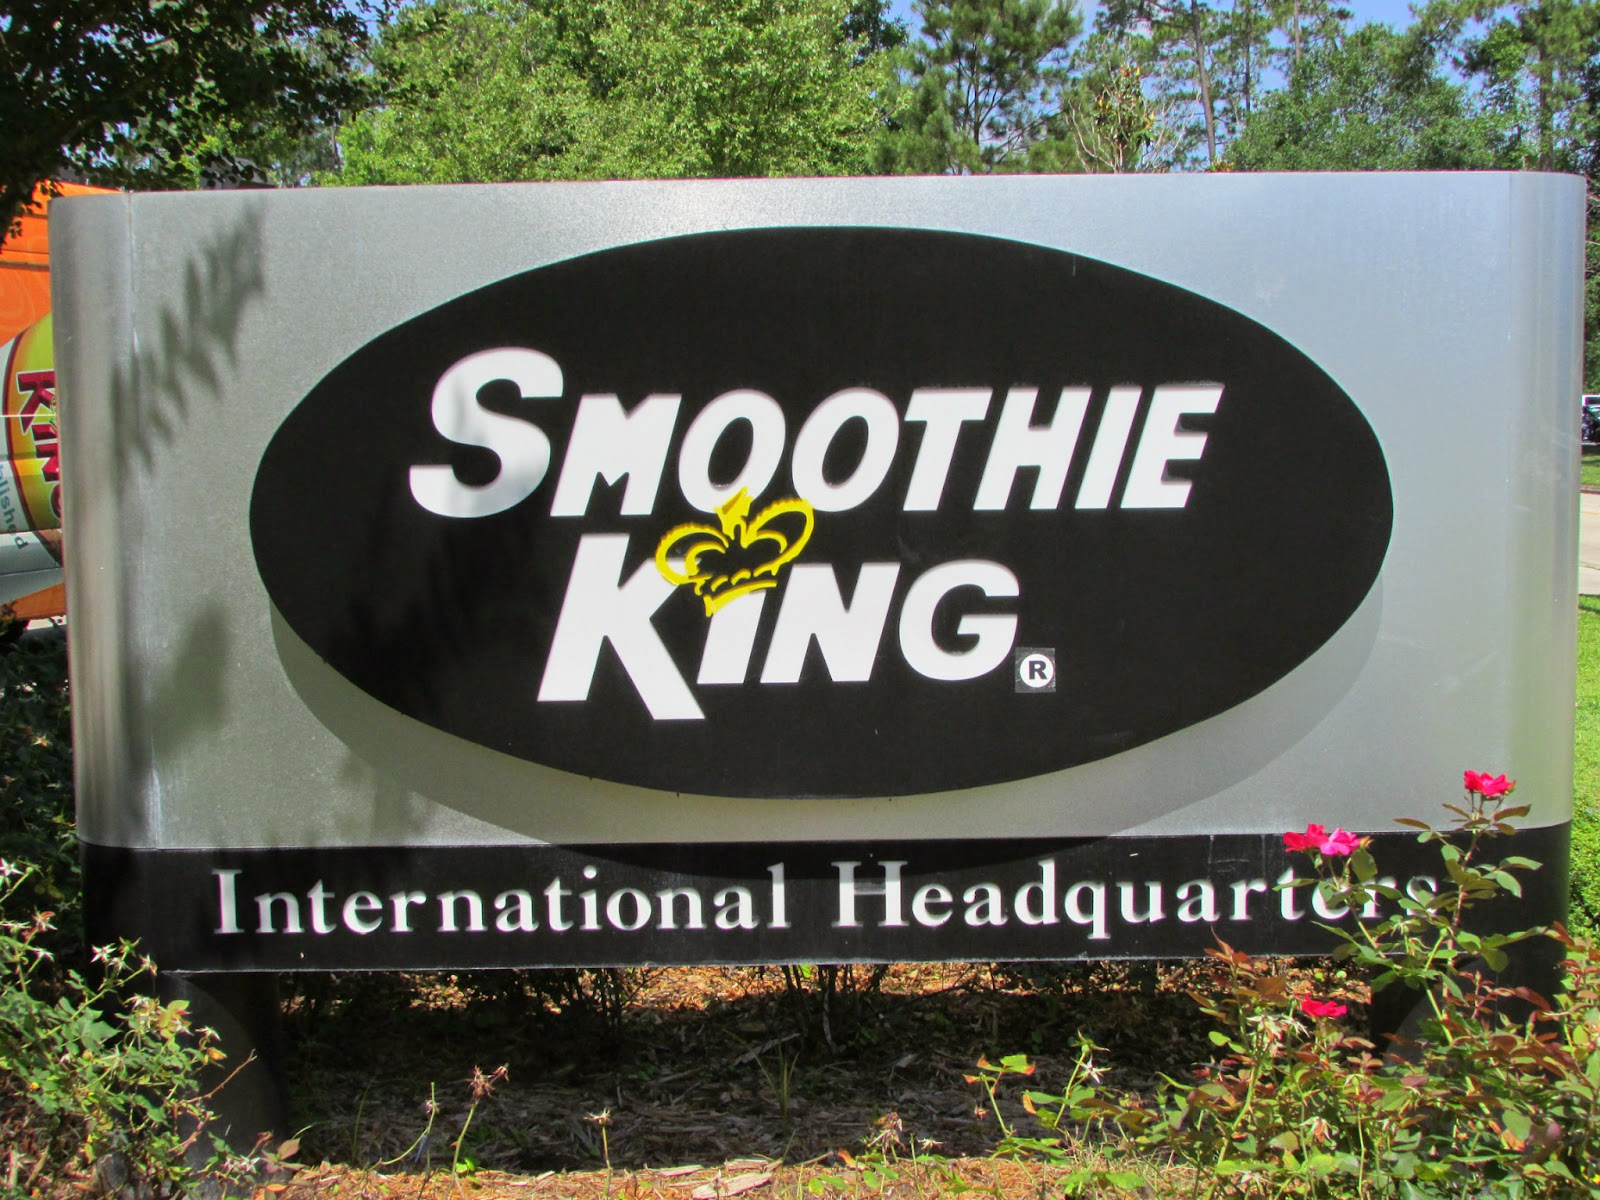 Smoothie King Corporate Office Headquarters